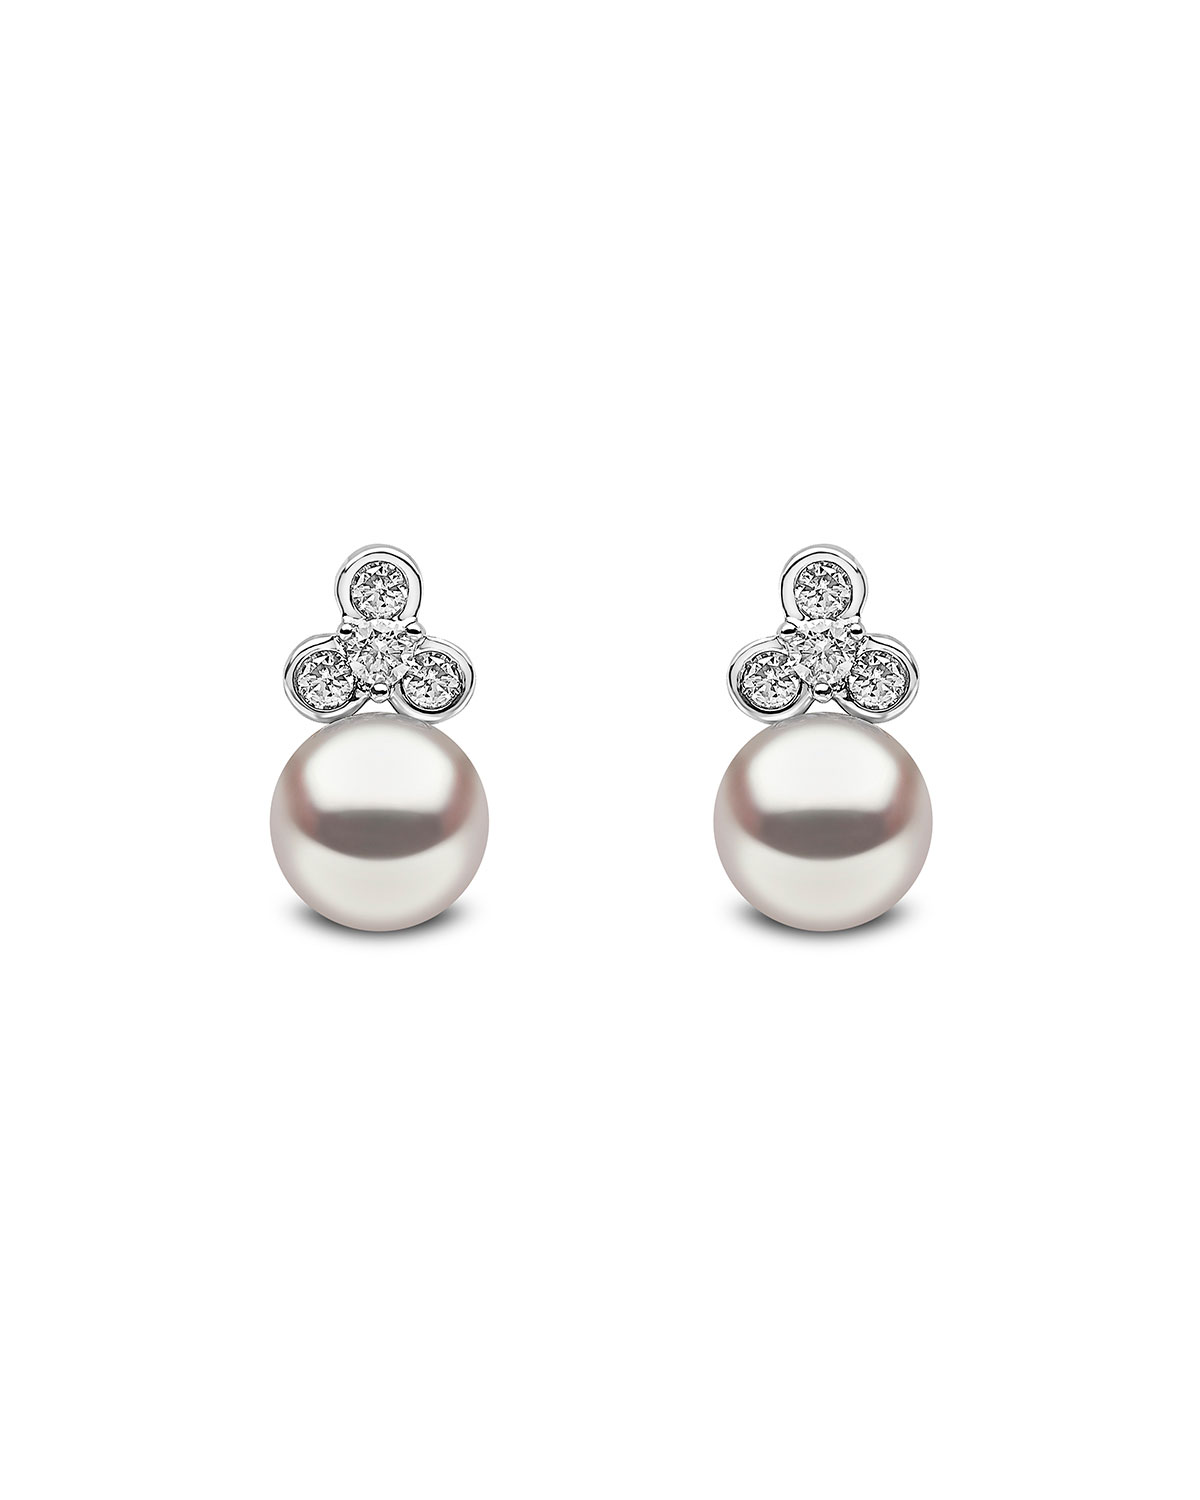 YOKO LONDON 18K White Gold Pearl & Diamond Trio Stud Earrings